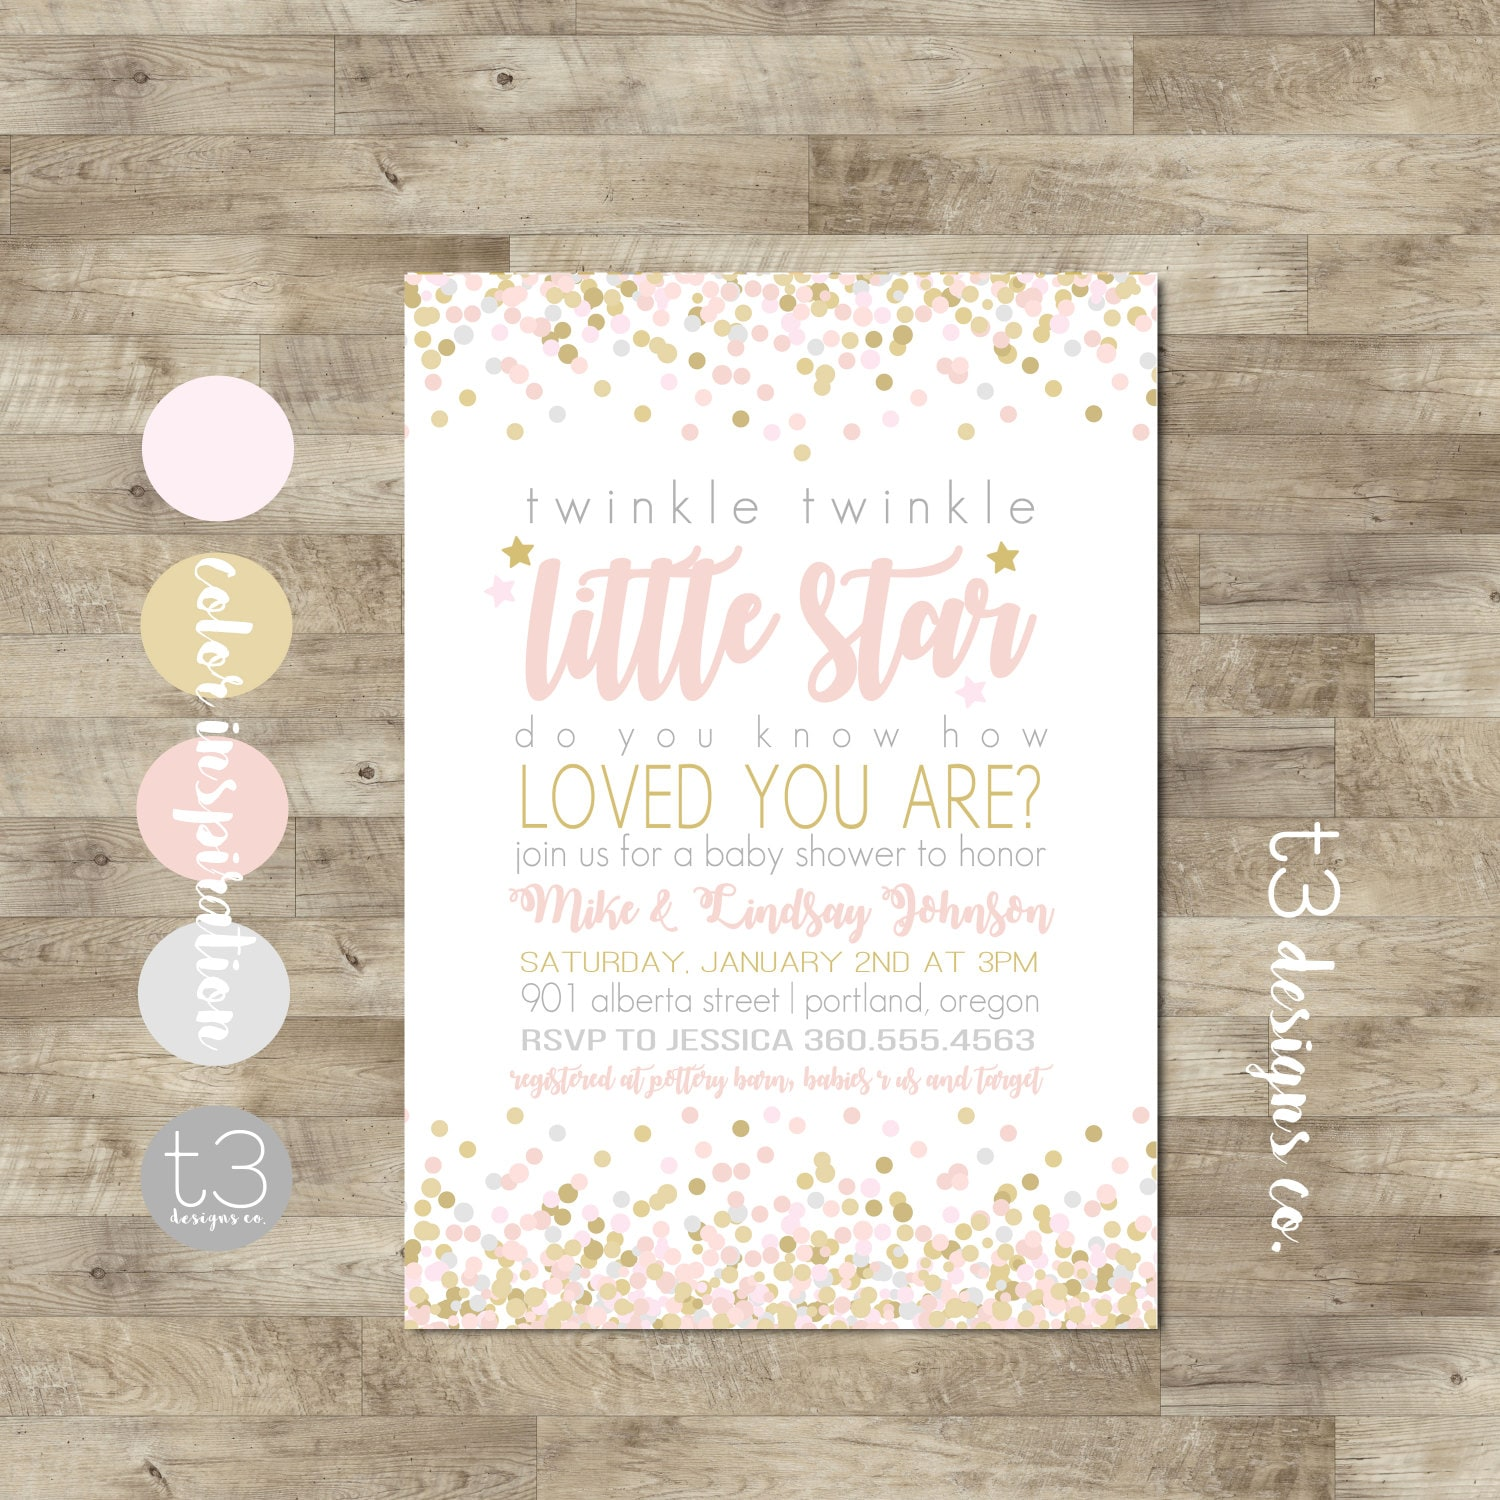 Twinkle Twinkle Little Star Baby Shower Invitation, Twinkle Girl Baby Shower,  Little Star Baby Shower Invite, Pink And Gold, Girl, T9